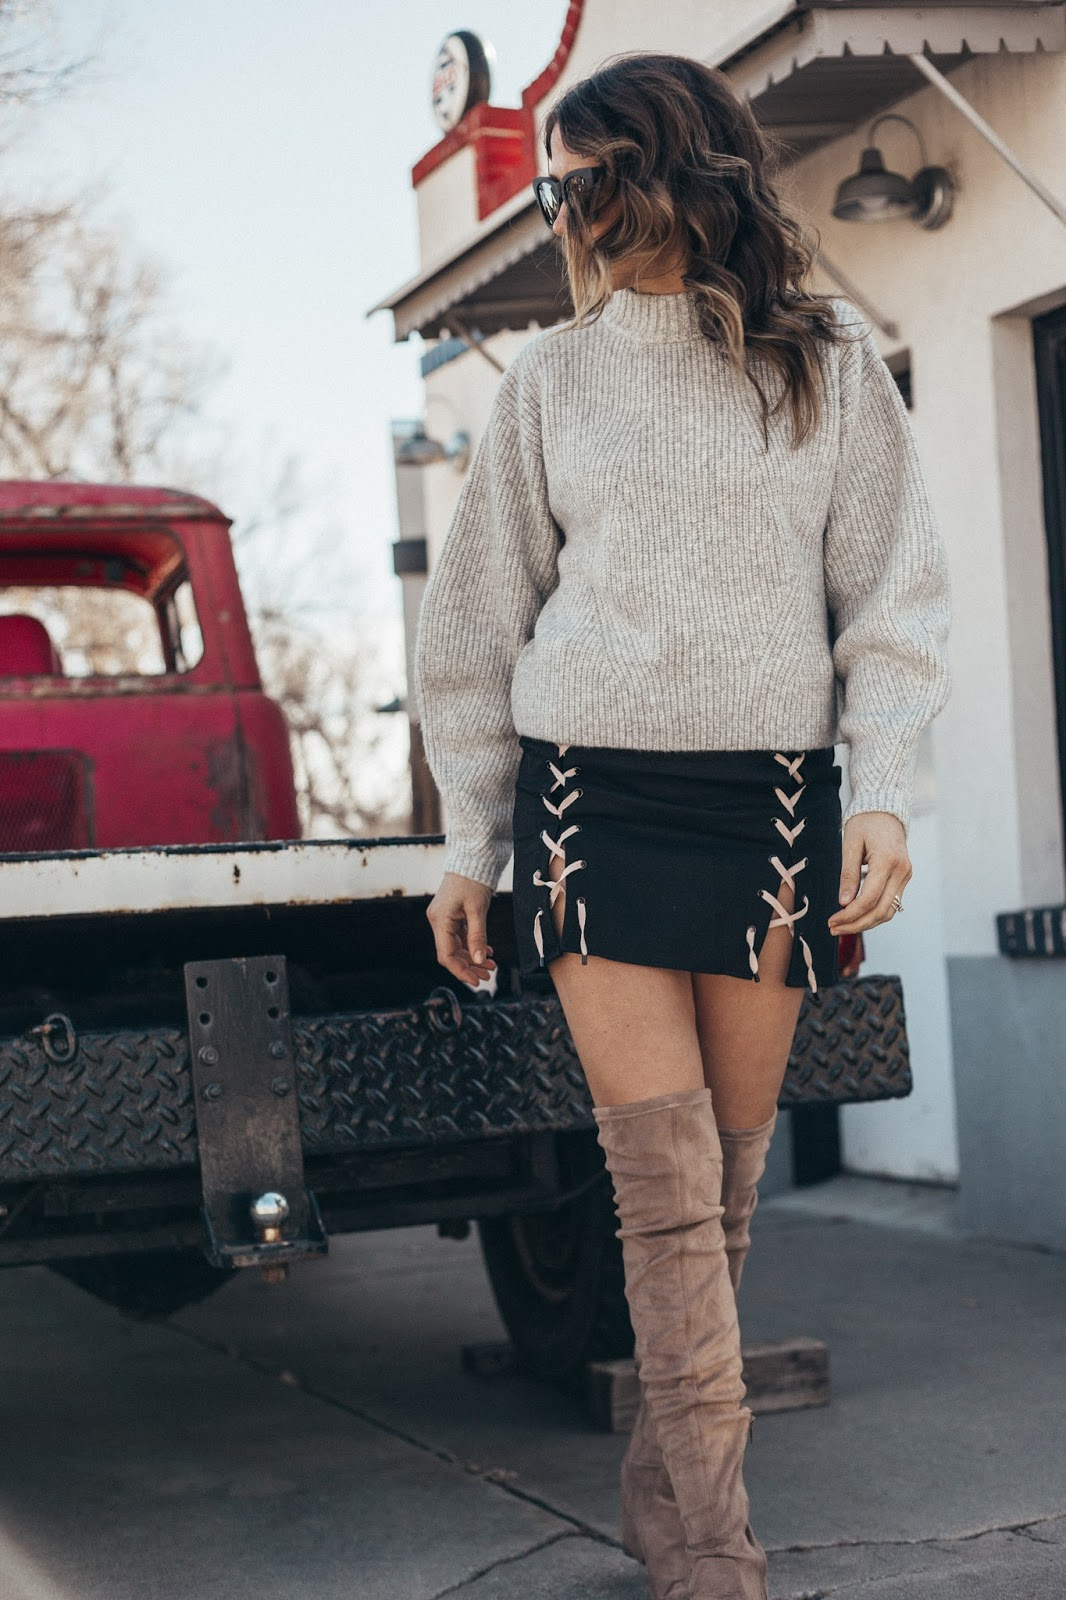 Skirt With Lacing & Sweater + OTK Boots by popular Colorado fashion blogger Eat Pray Wear Love